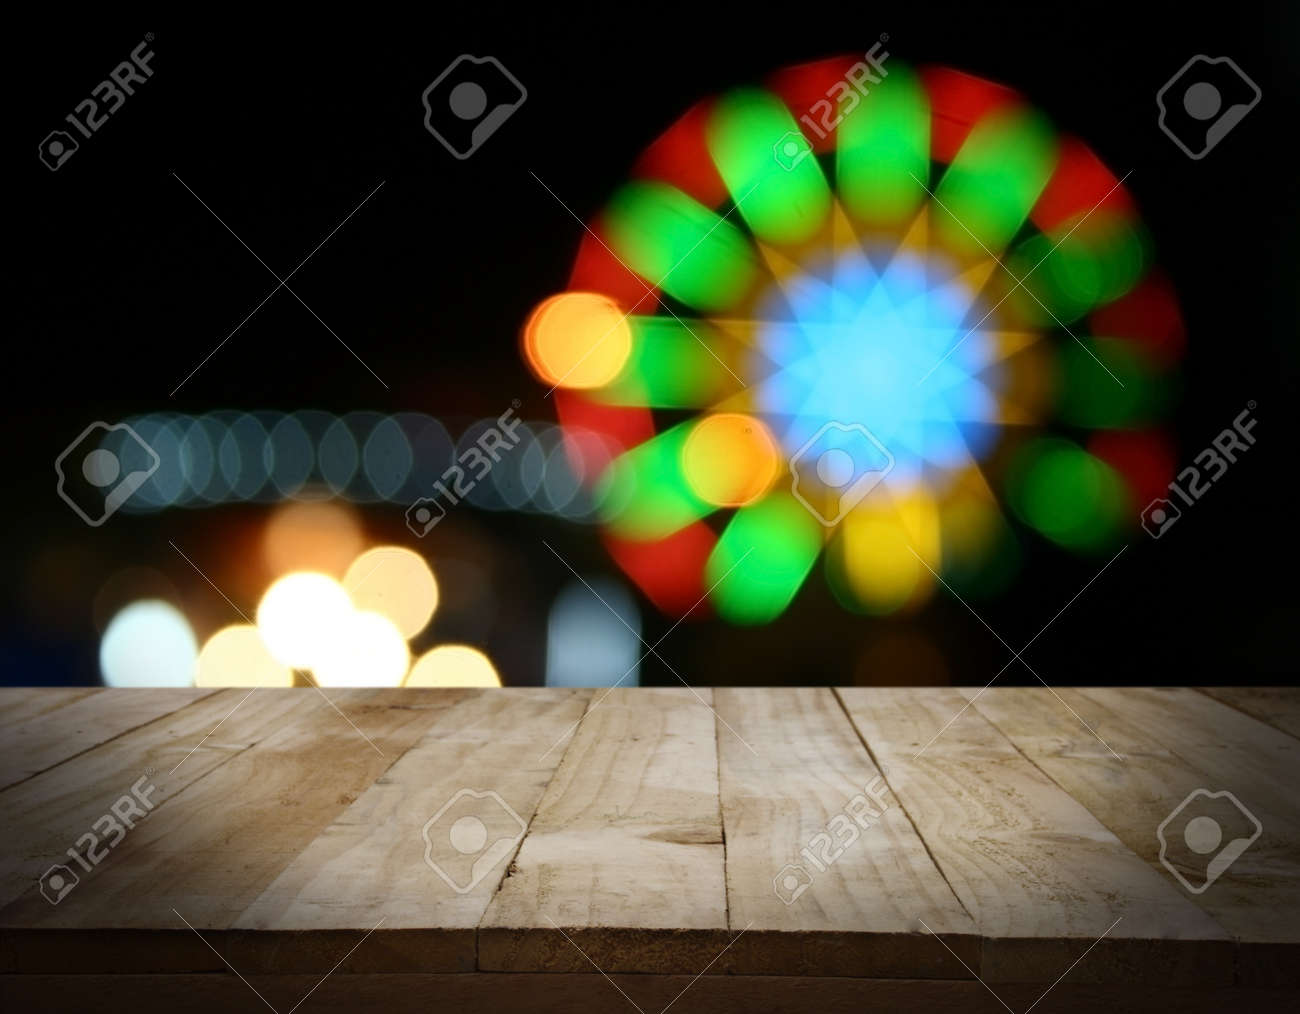 hight resolution of christmas holiday background with empty wooden deck table over christmas tree empty display for montage